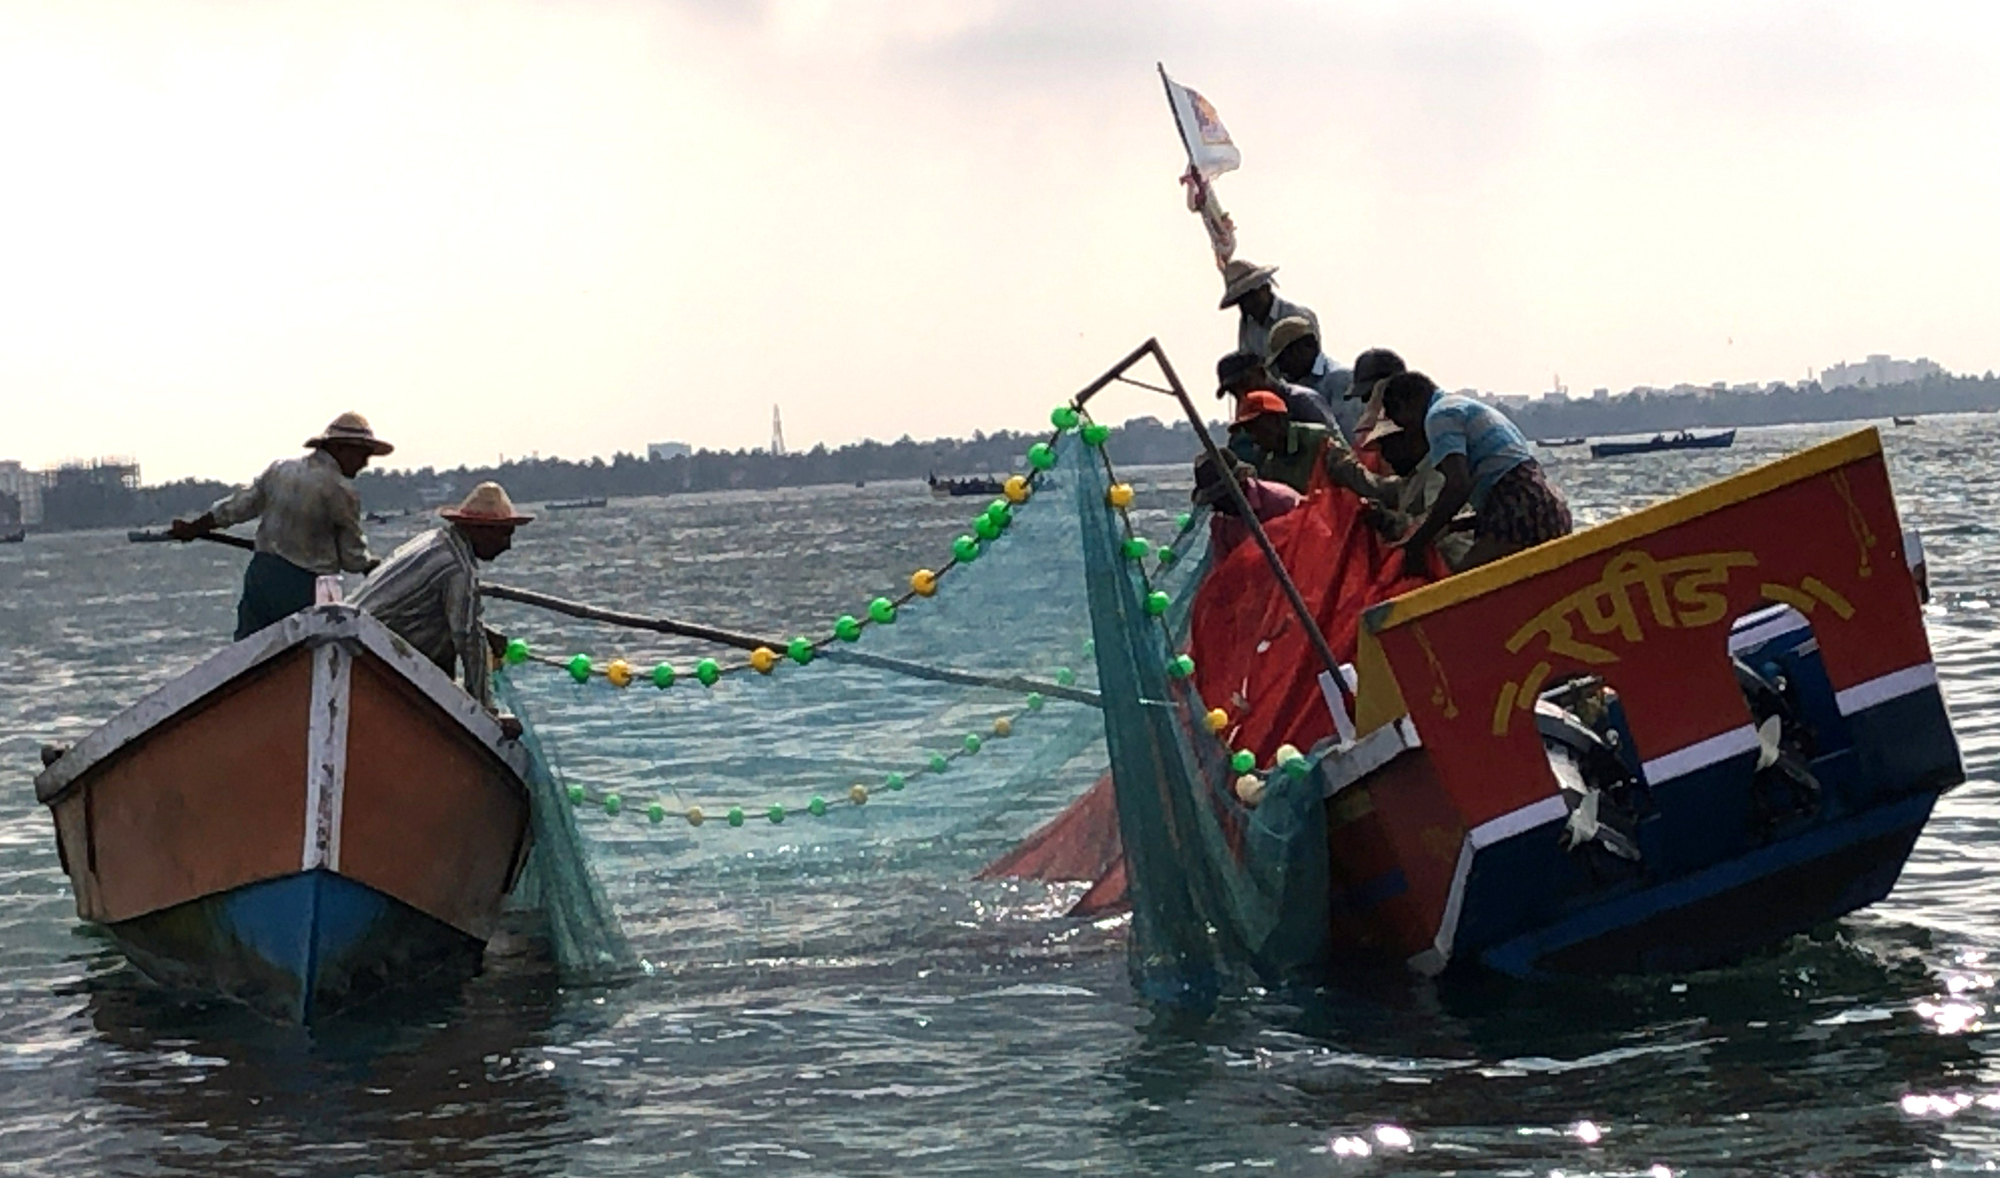 Two small boats are next to each other in the water, connected by ropes